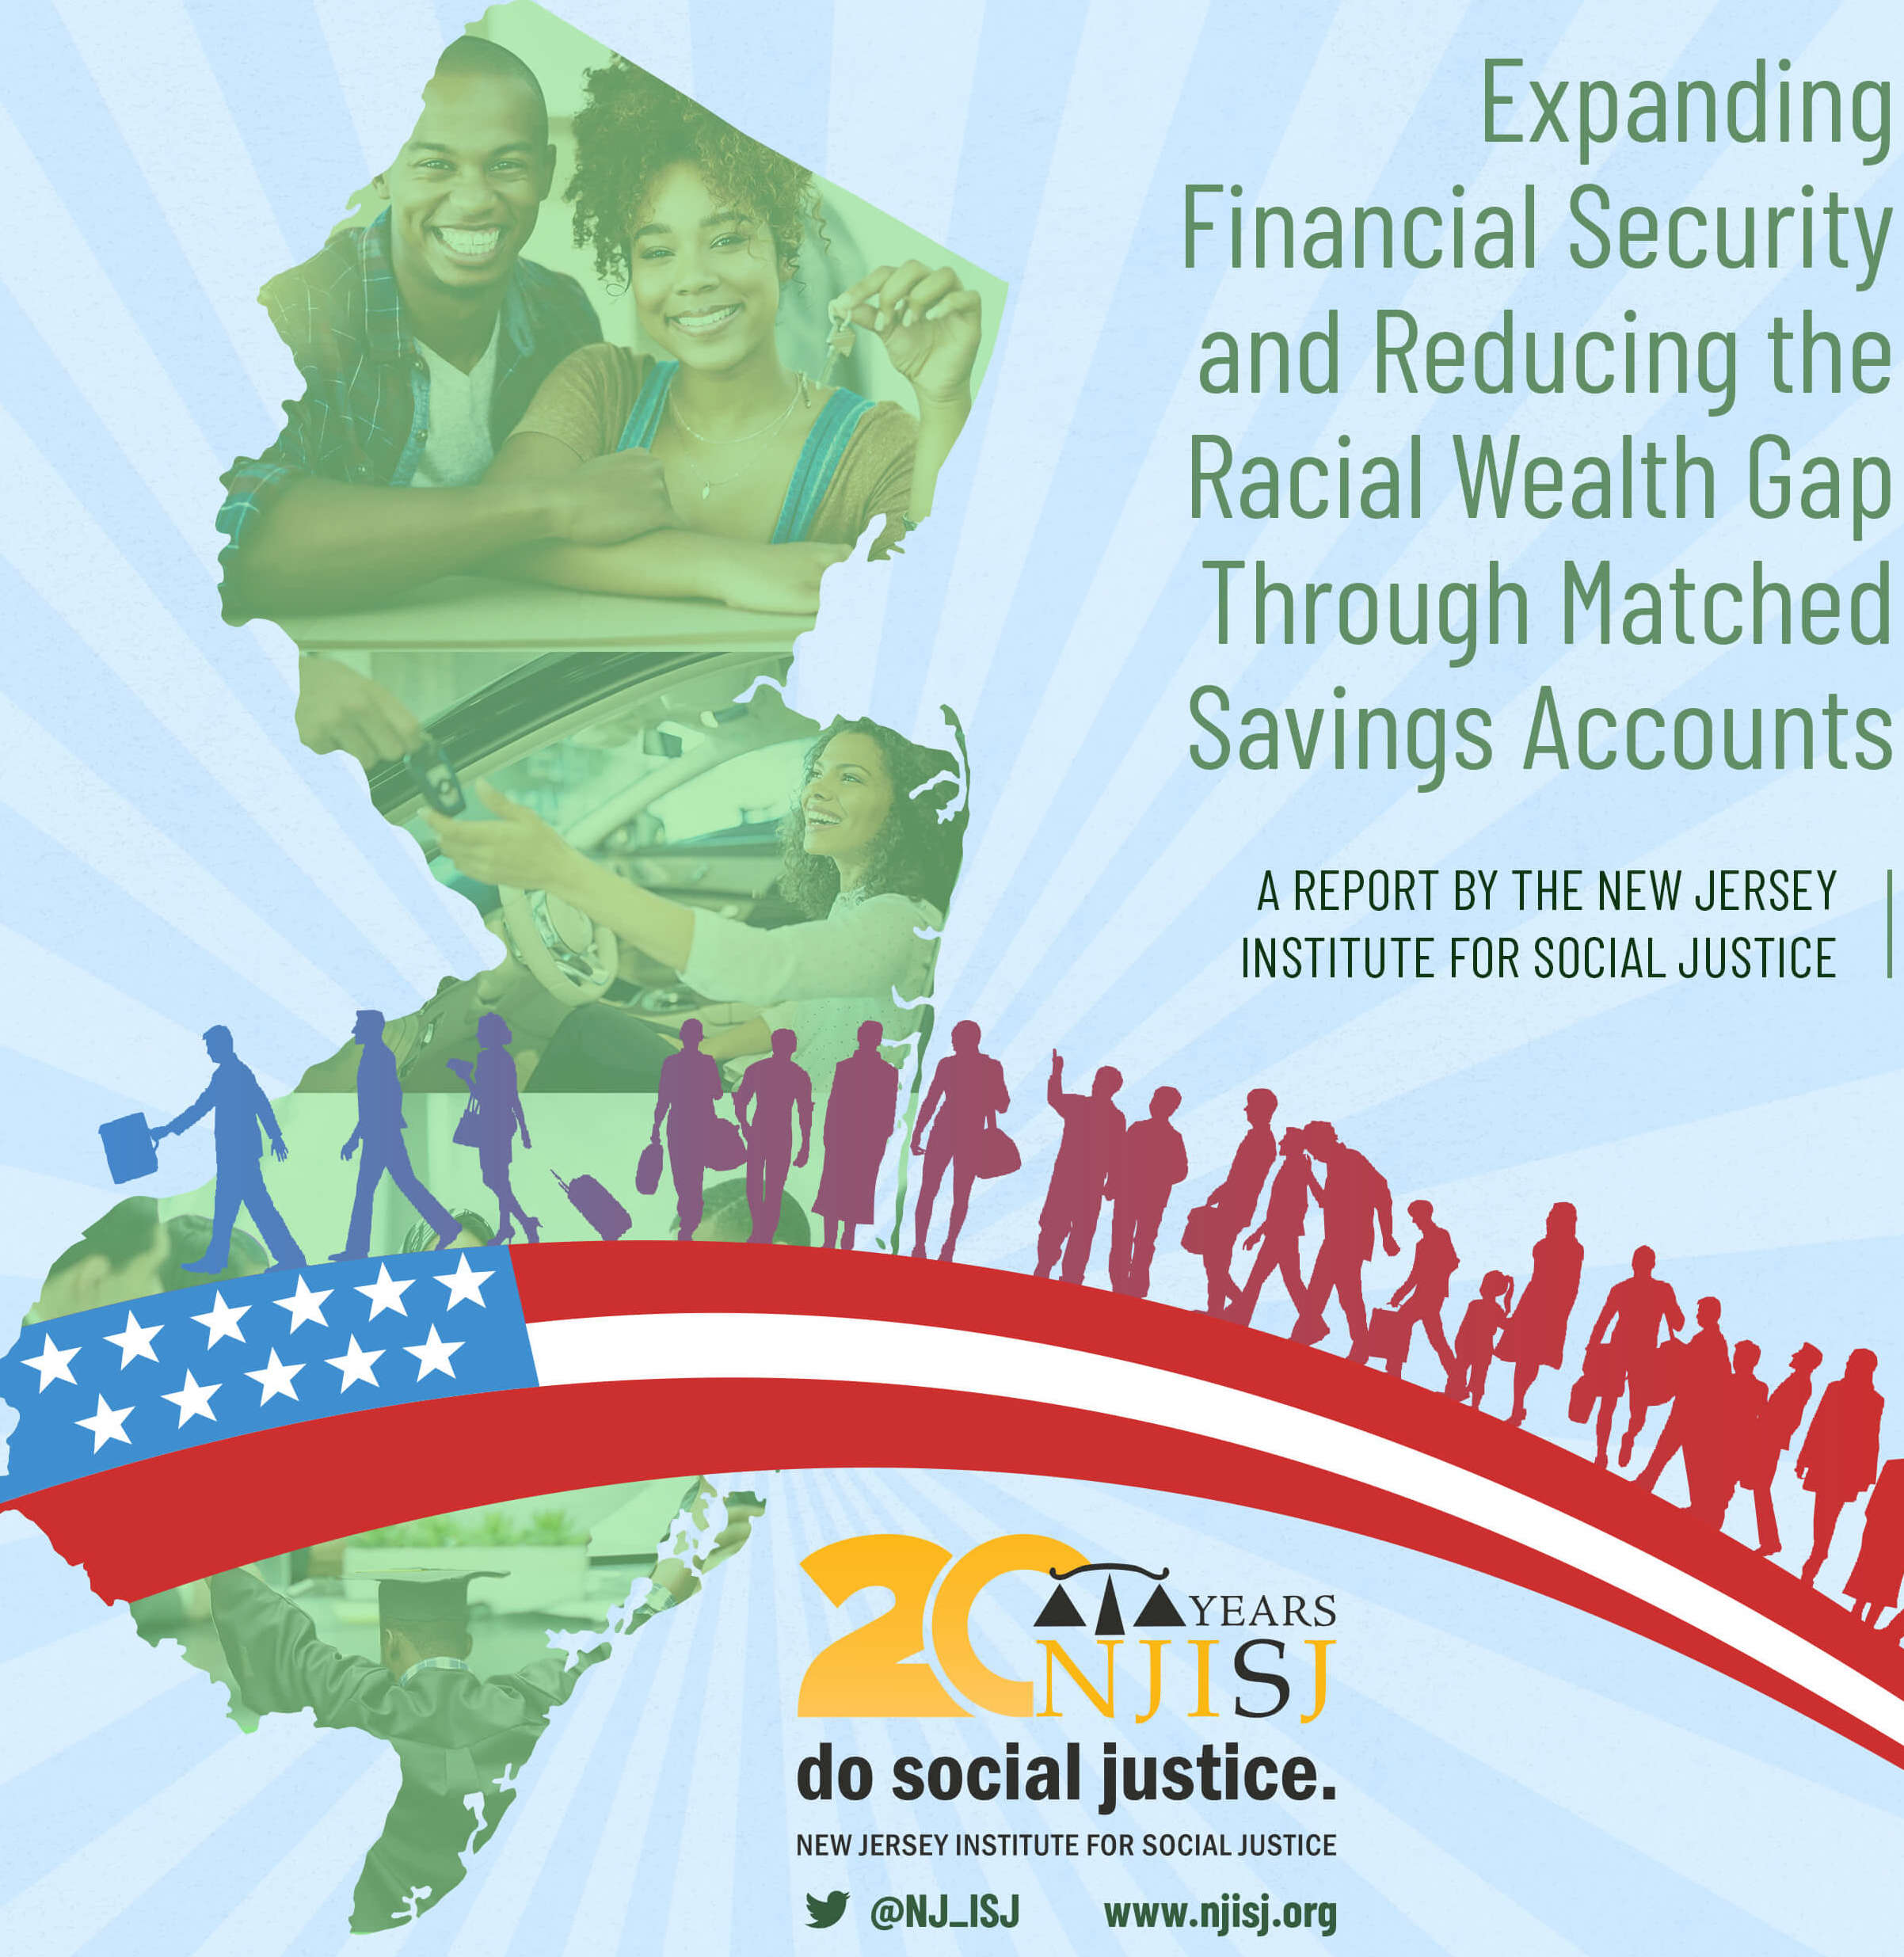 Read the Institute's new report on how Individual Savings Accounts can build wealth as well as racial and income equality by allowing people to save toward their goals.